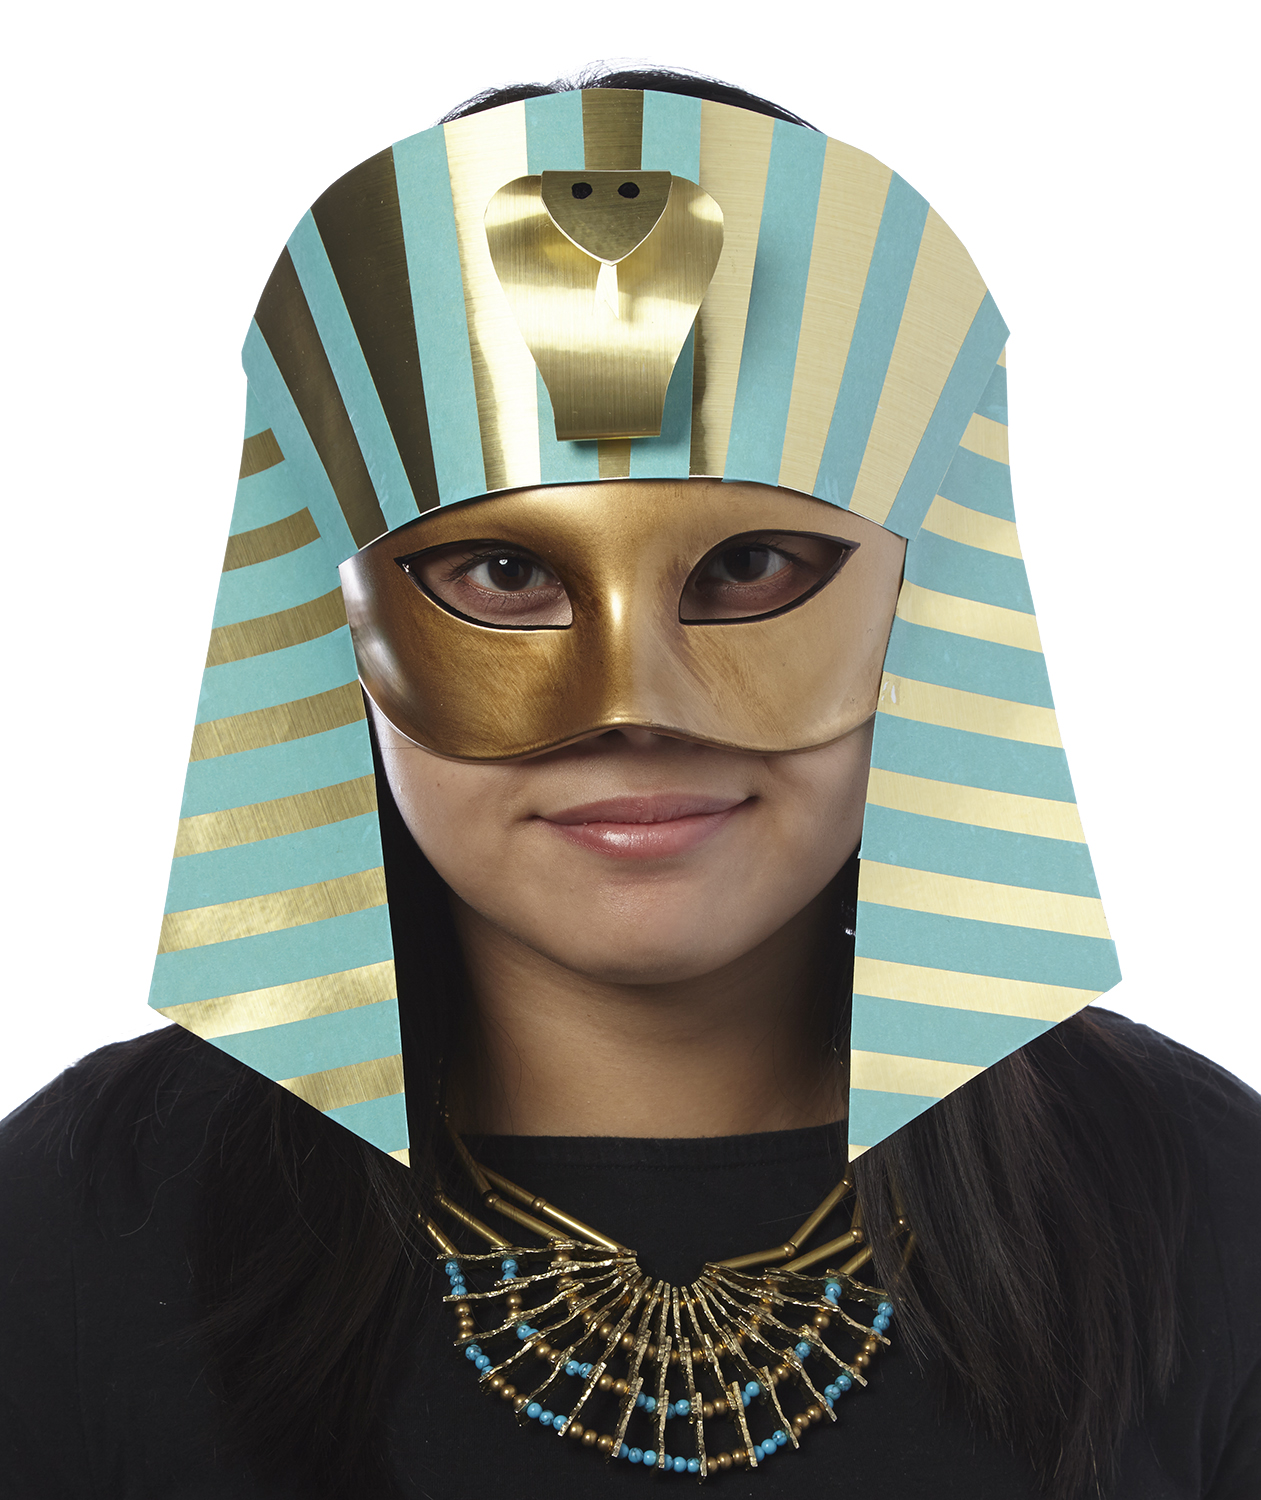 DIY Halloween costumes - Pharaoh mask